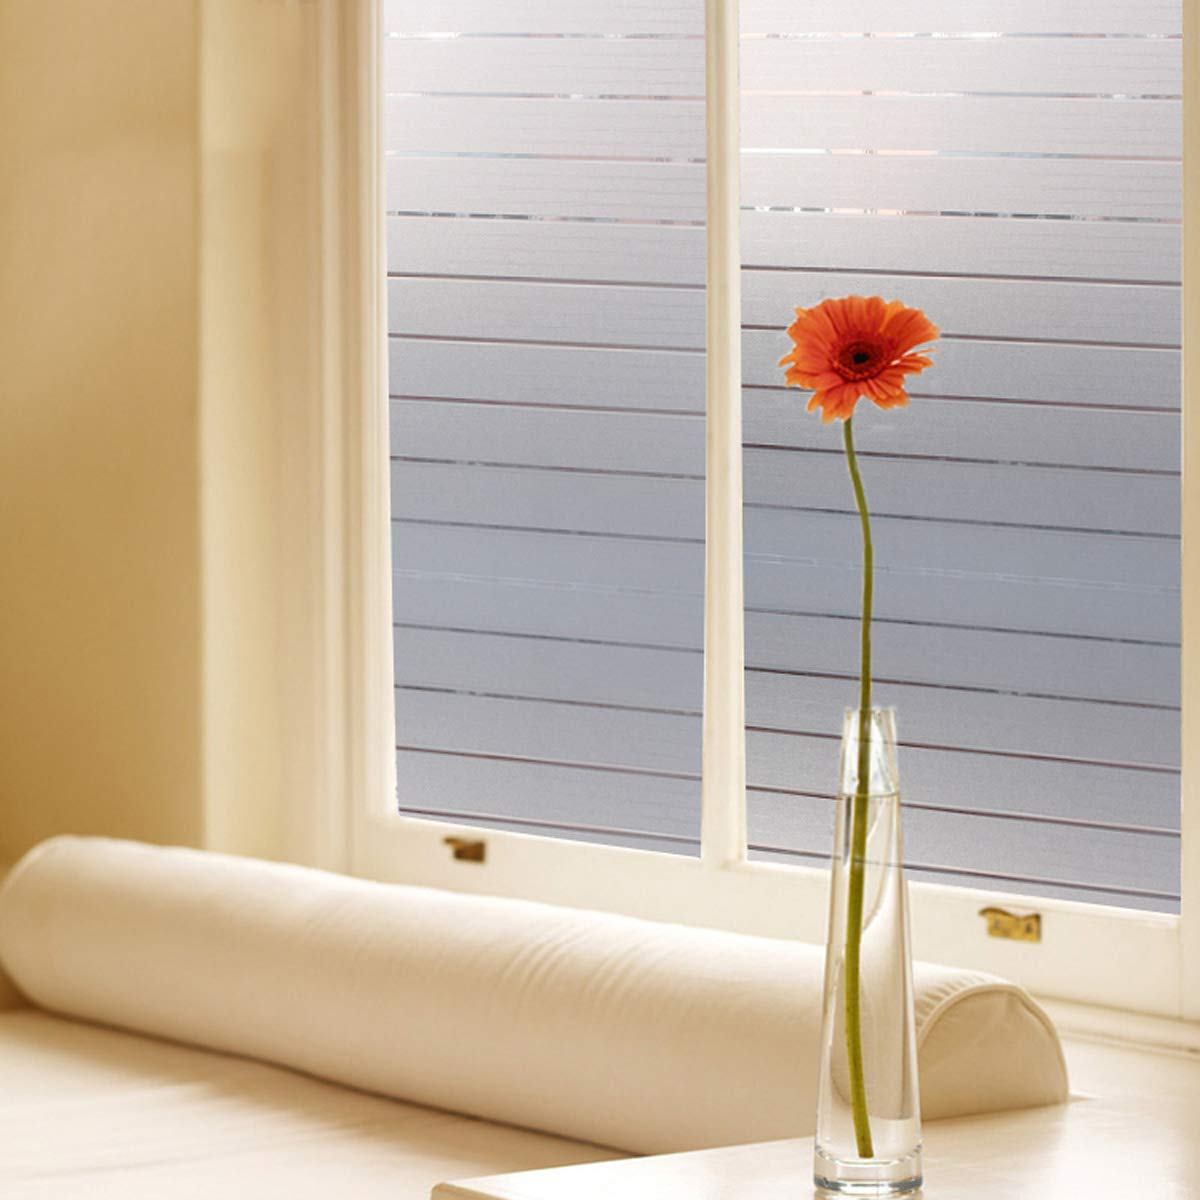 Bloss Frosted Window Shades Decorative Window Glass Film Stained Vinyl Privacy(17.7-by-78.7 Inch)